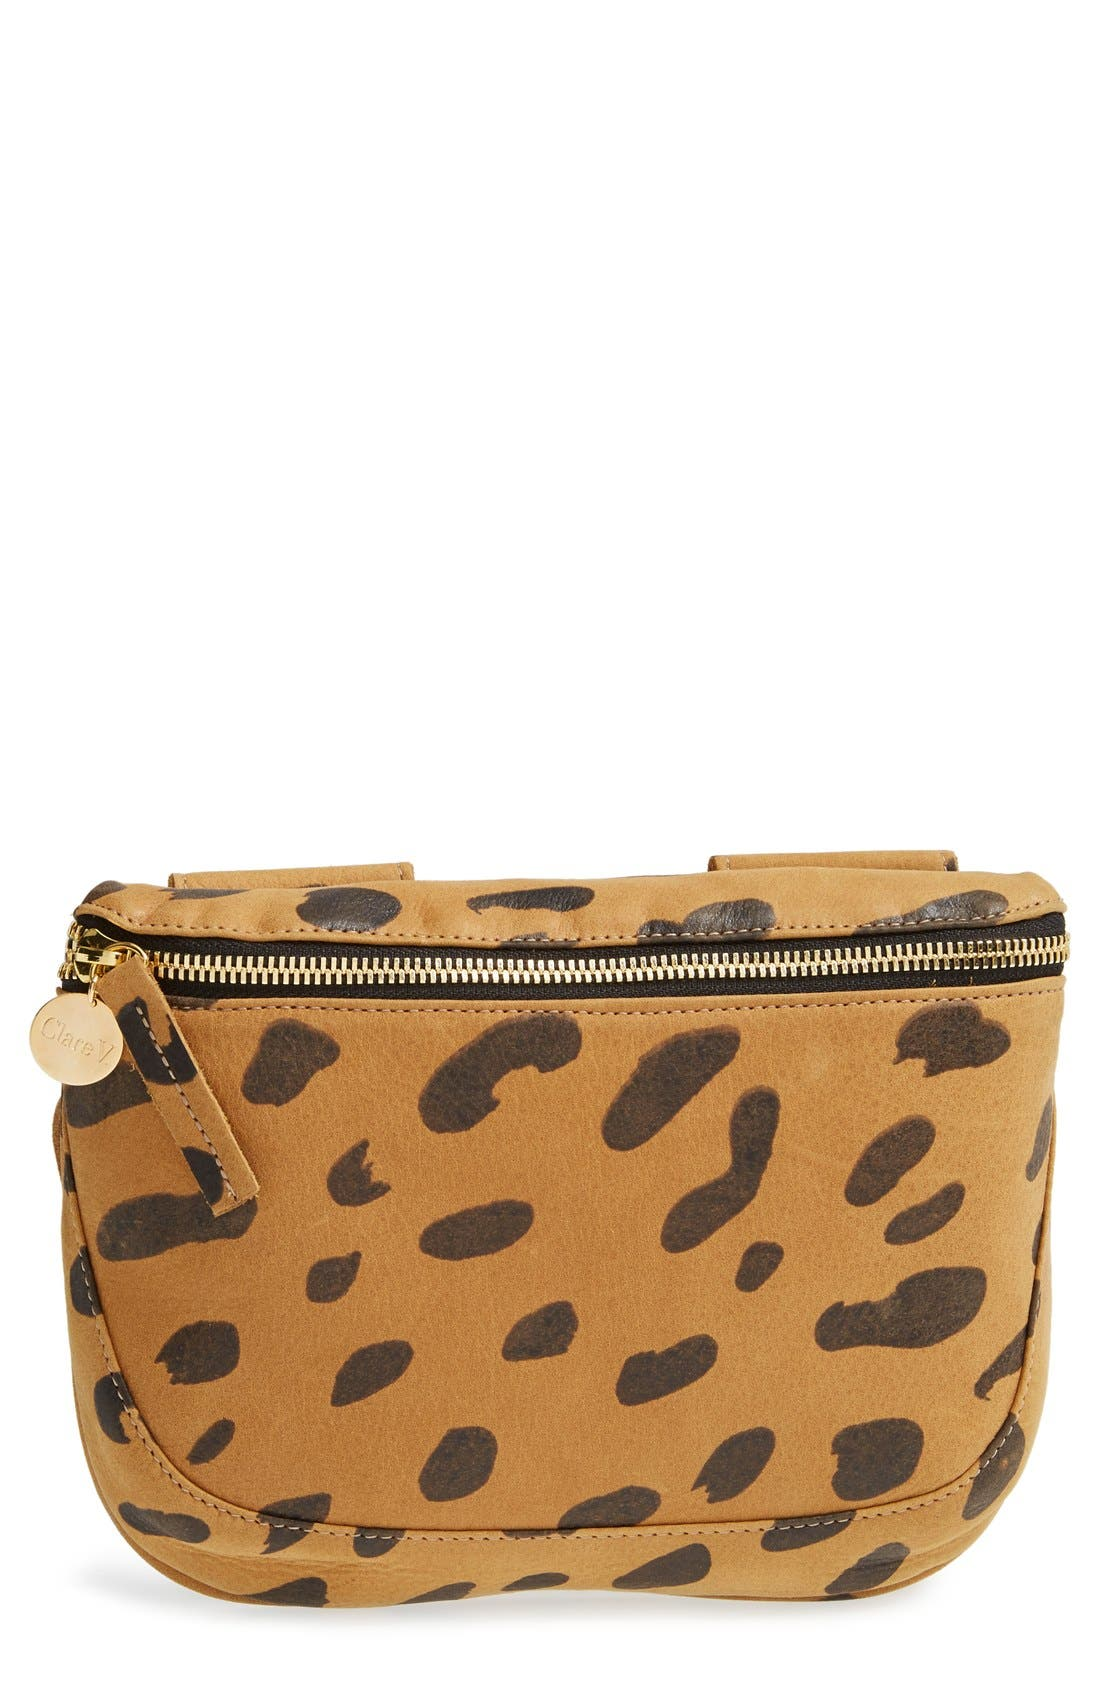 Clare V. 'Fanny Pack' Jaguar Print Leather Belt Bag